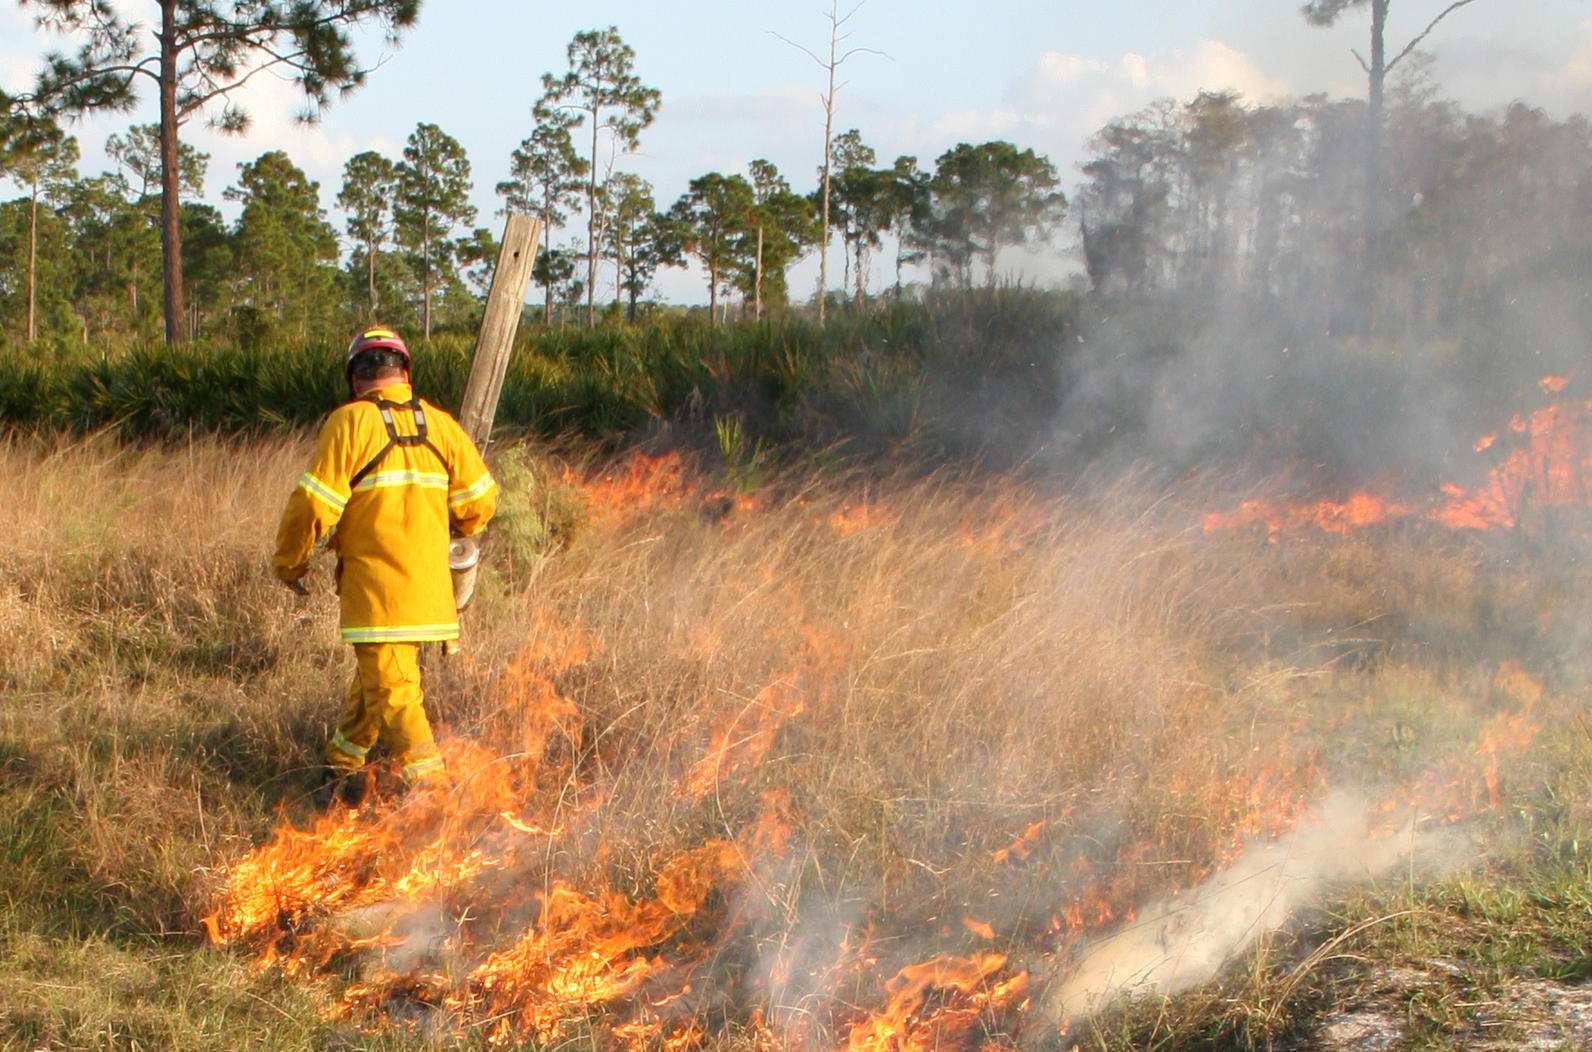 Conducting a prescribed burn at Audubon's Corkscrew Swamp Sanctuary